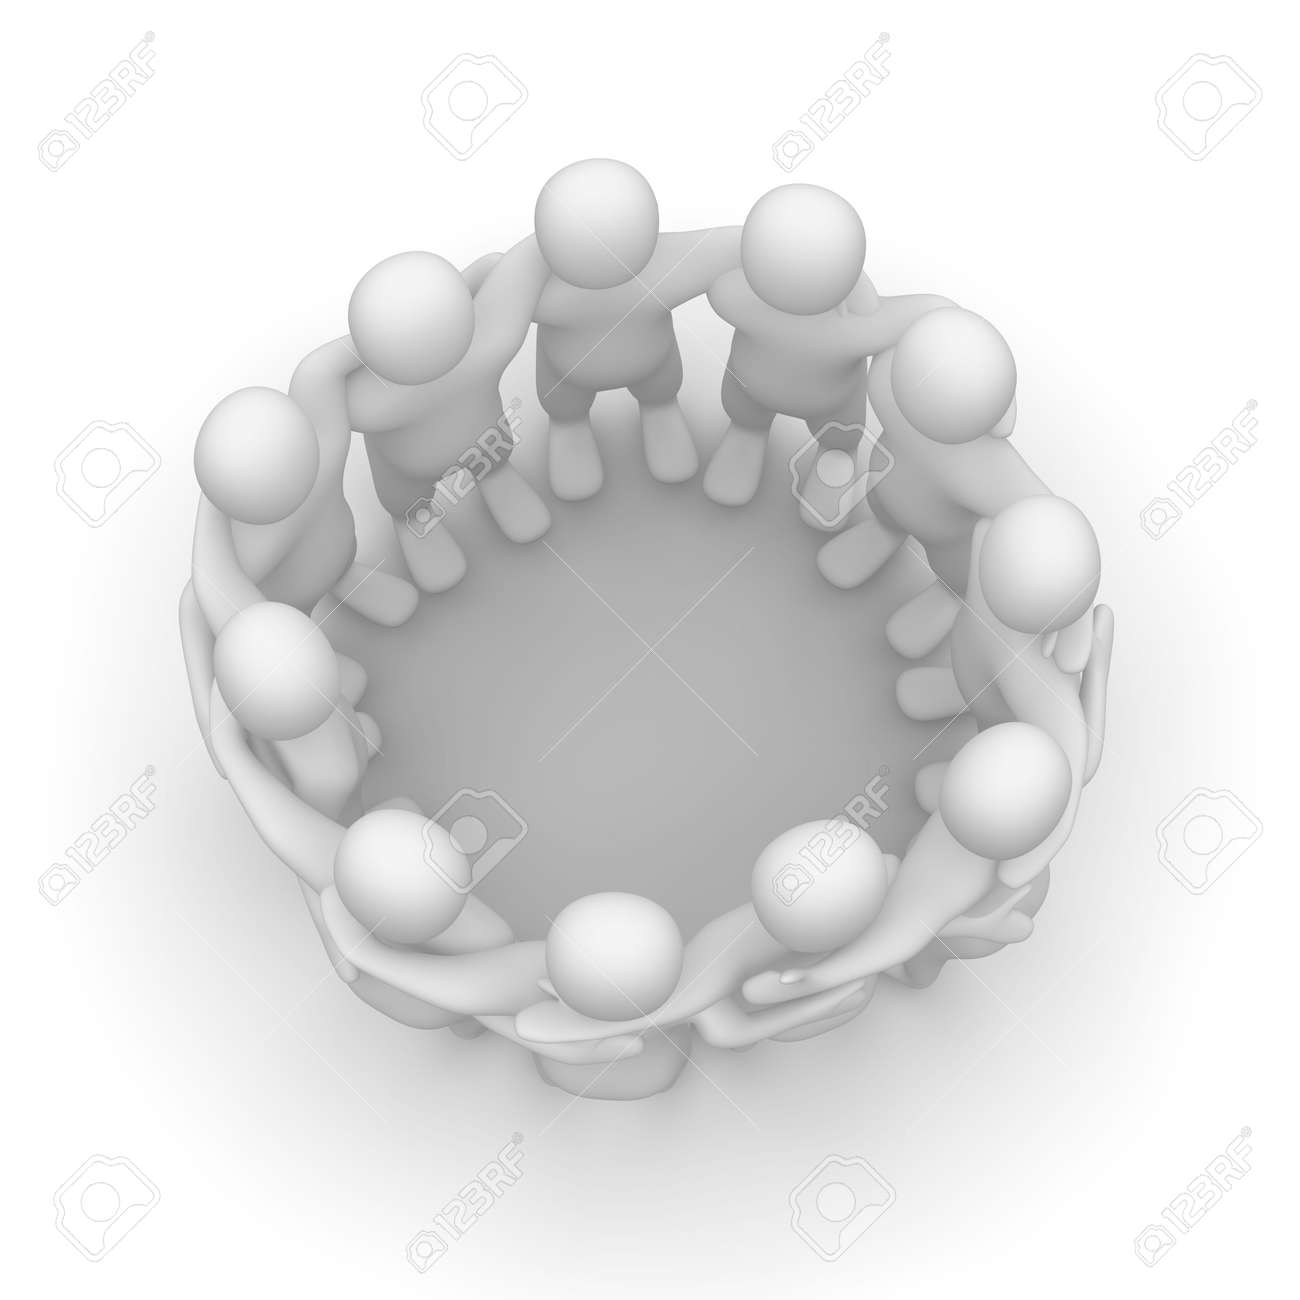 Friends meeting. 3d rendered illustration isolated on white. Stock Illustration - 4821005